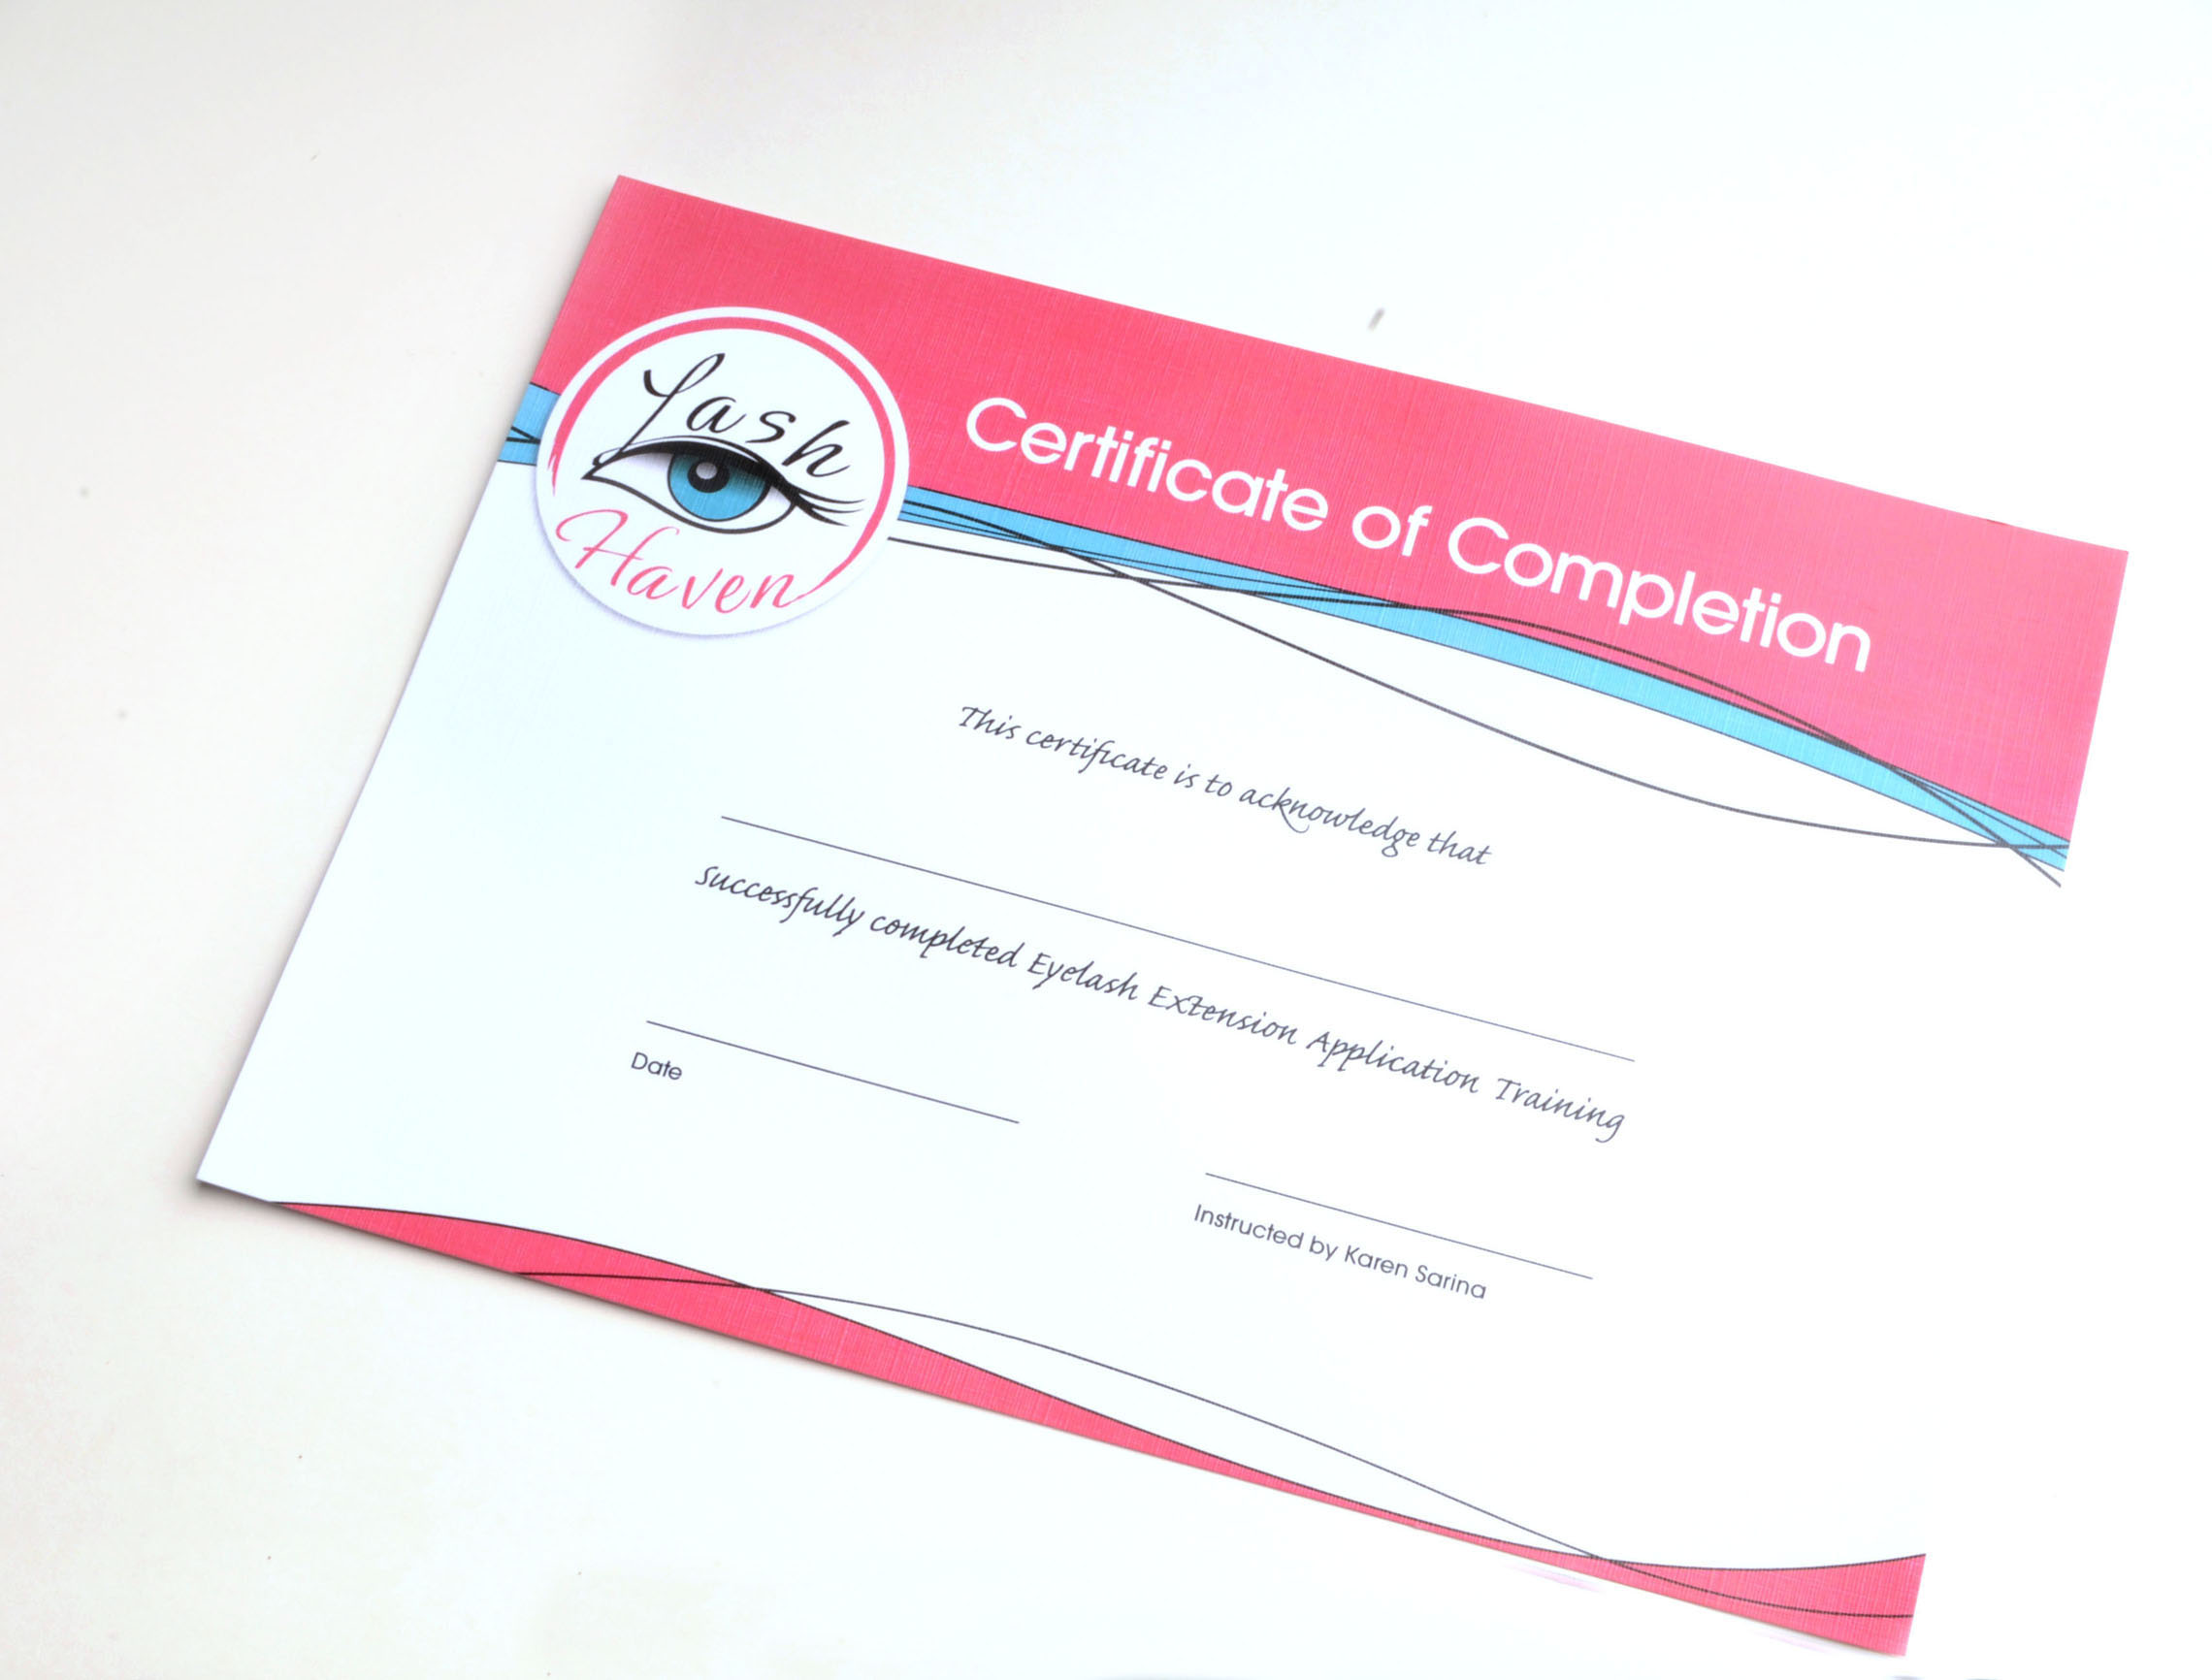 Lash Haven Certificate